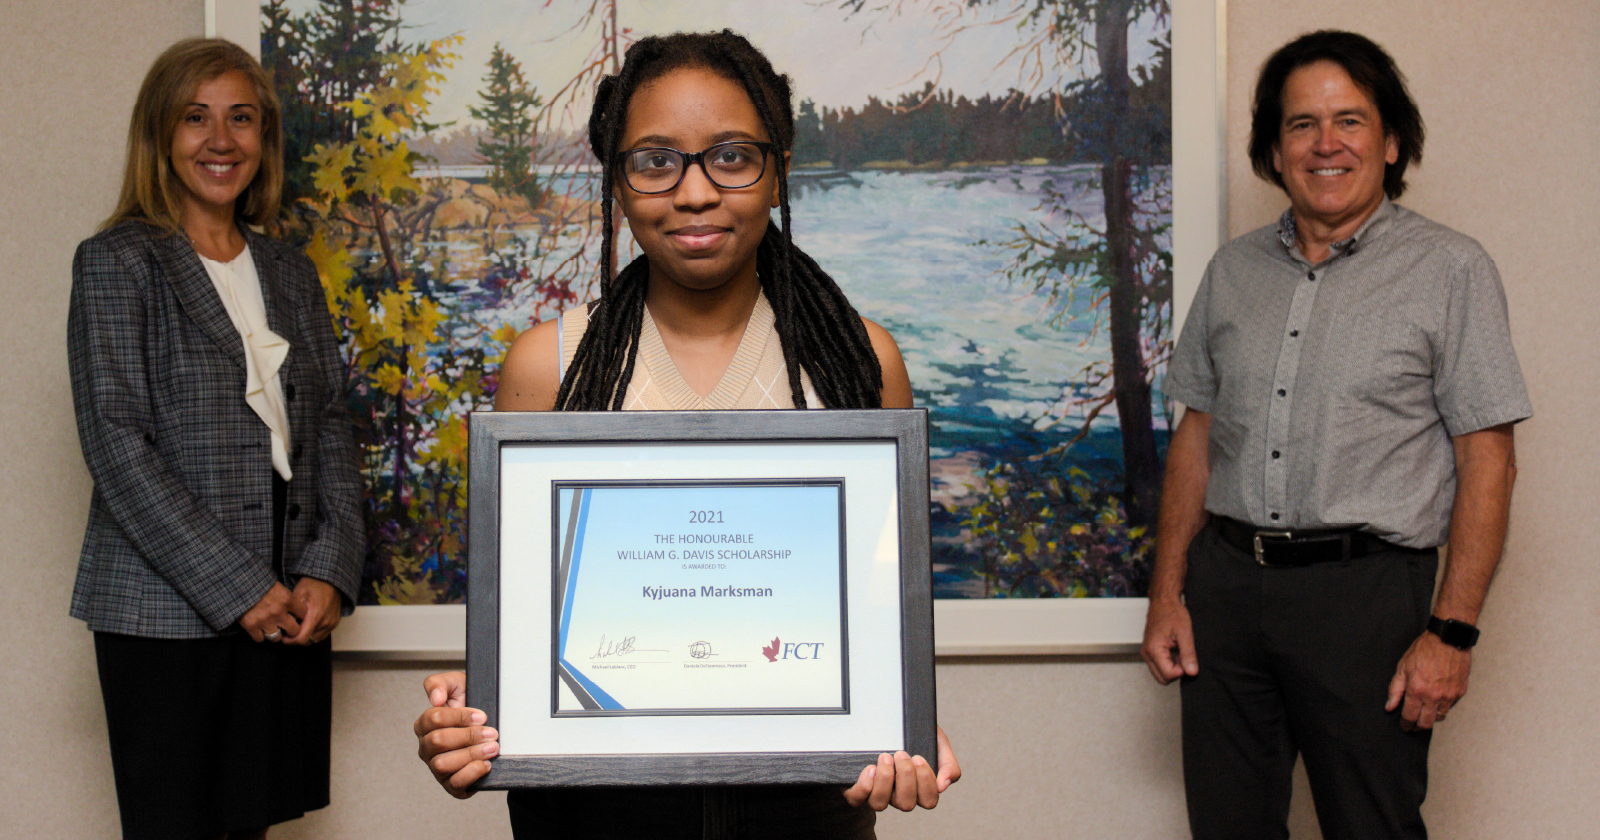 photo of Jyjuana Marksman holding her scholarship award with Daniela DeTommaso standing behind and to the left, Michael LeBlanc standing behind to the right.